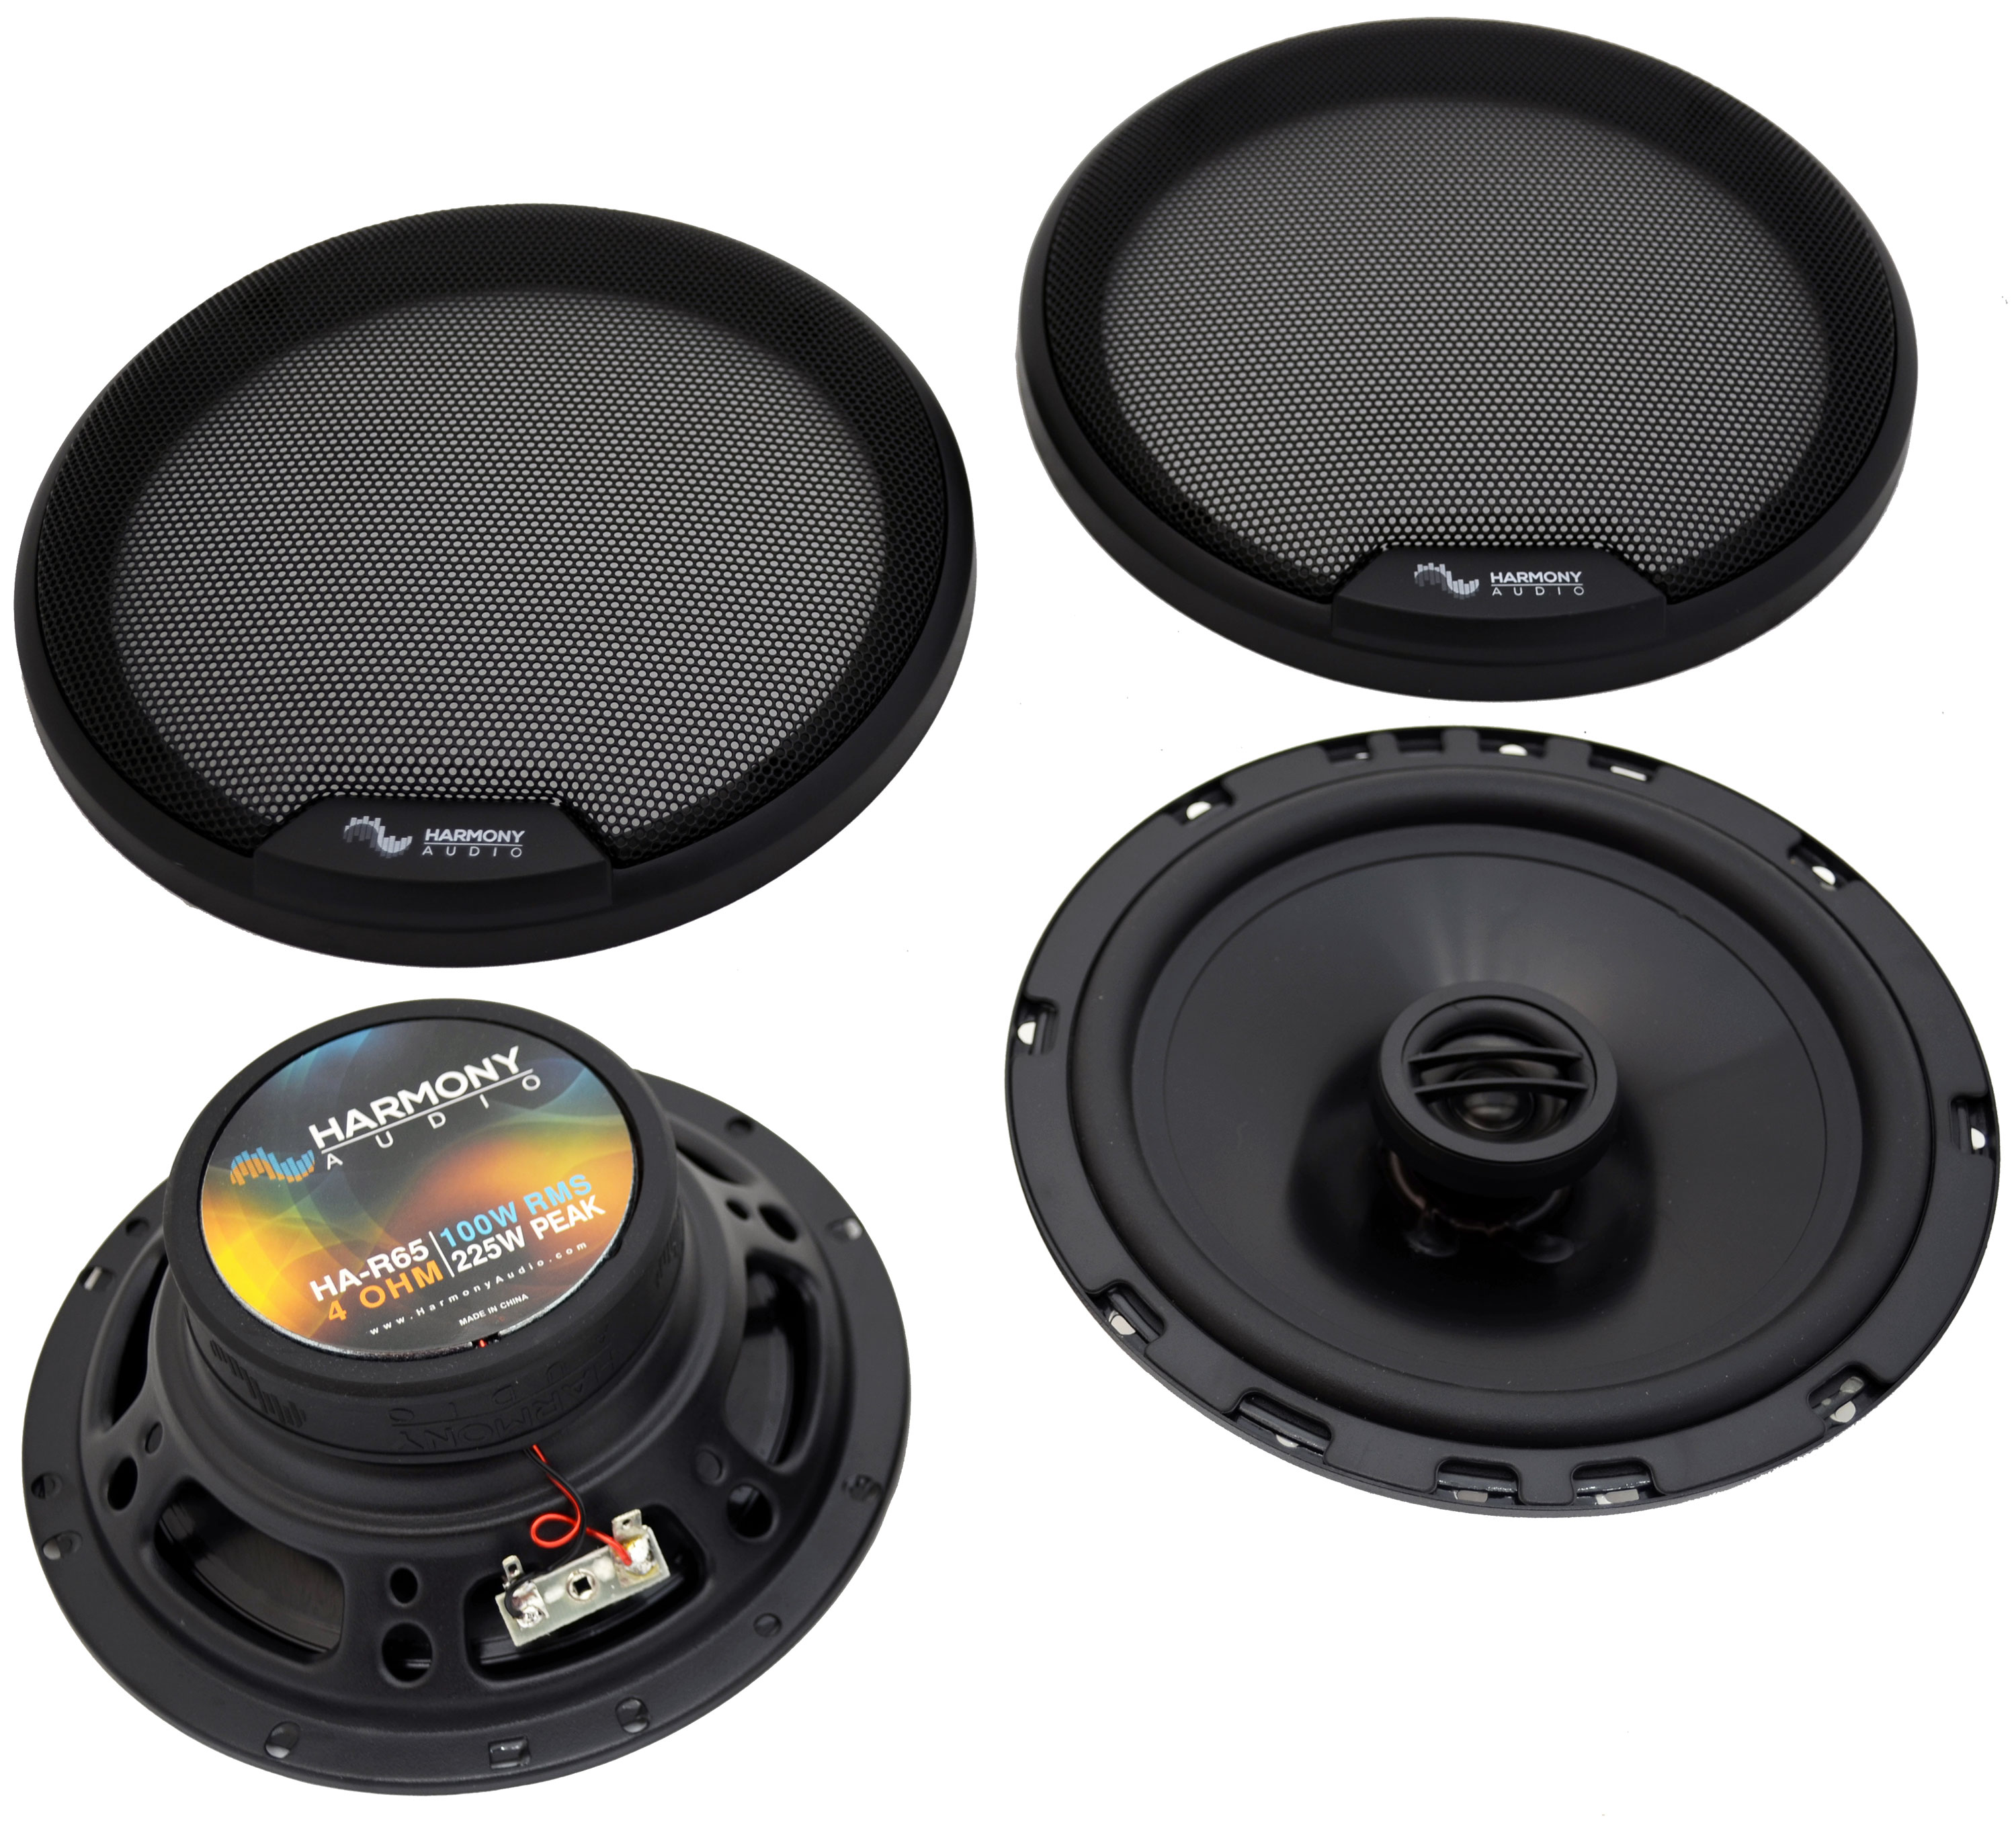 Fits BMW Z8 Vehicle 2001-2003 Front Replacement Speaker Harmony HA-R65 Speakers